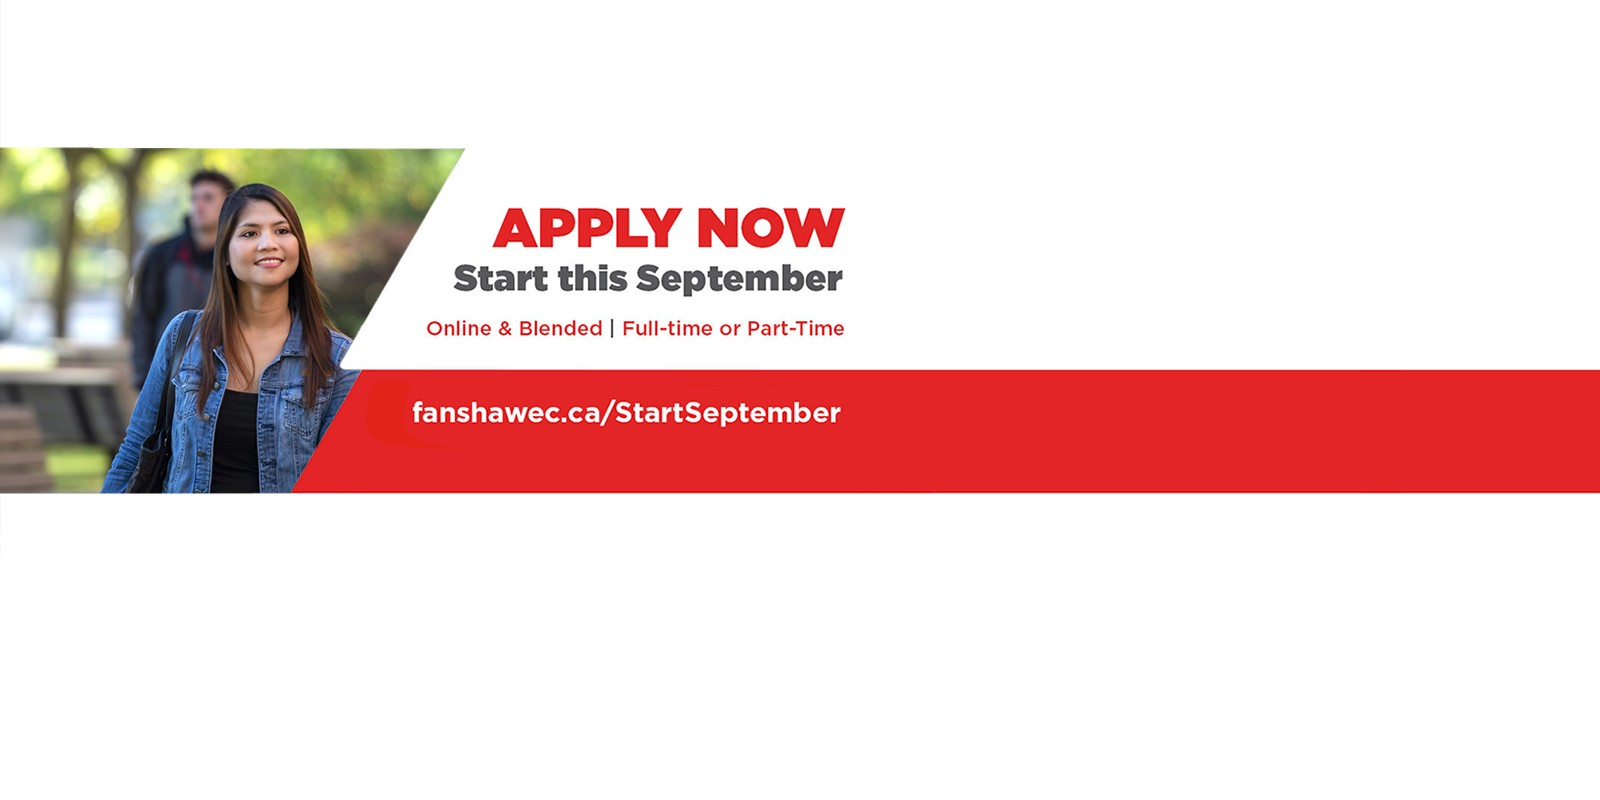 Fanshawe College Mission Statement Employees And Hiring Linkedin